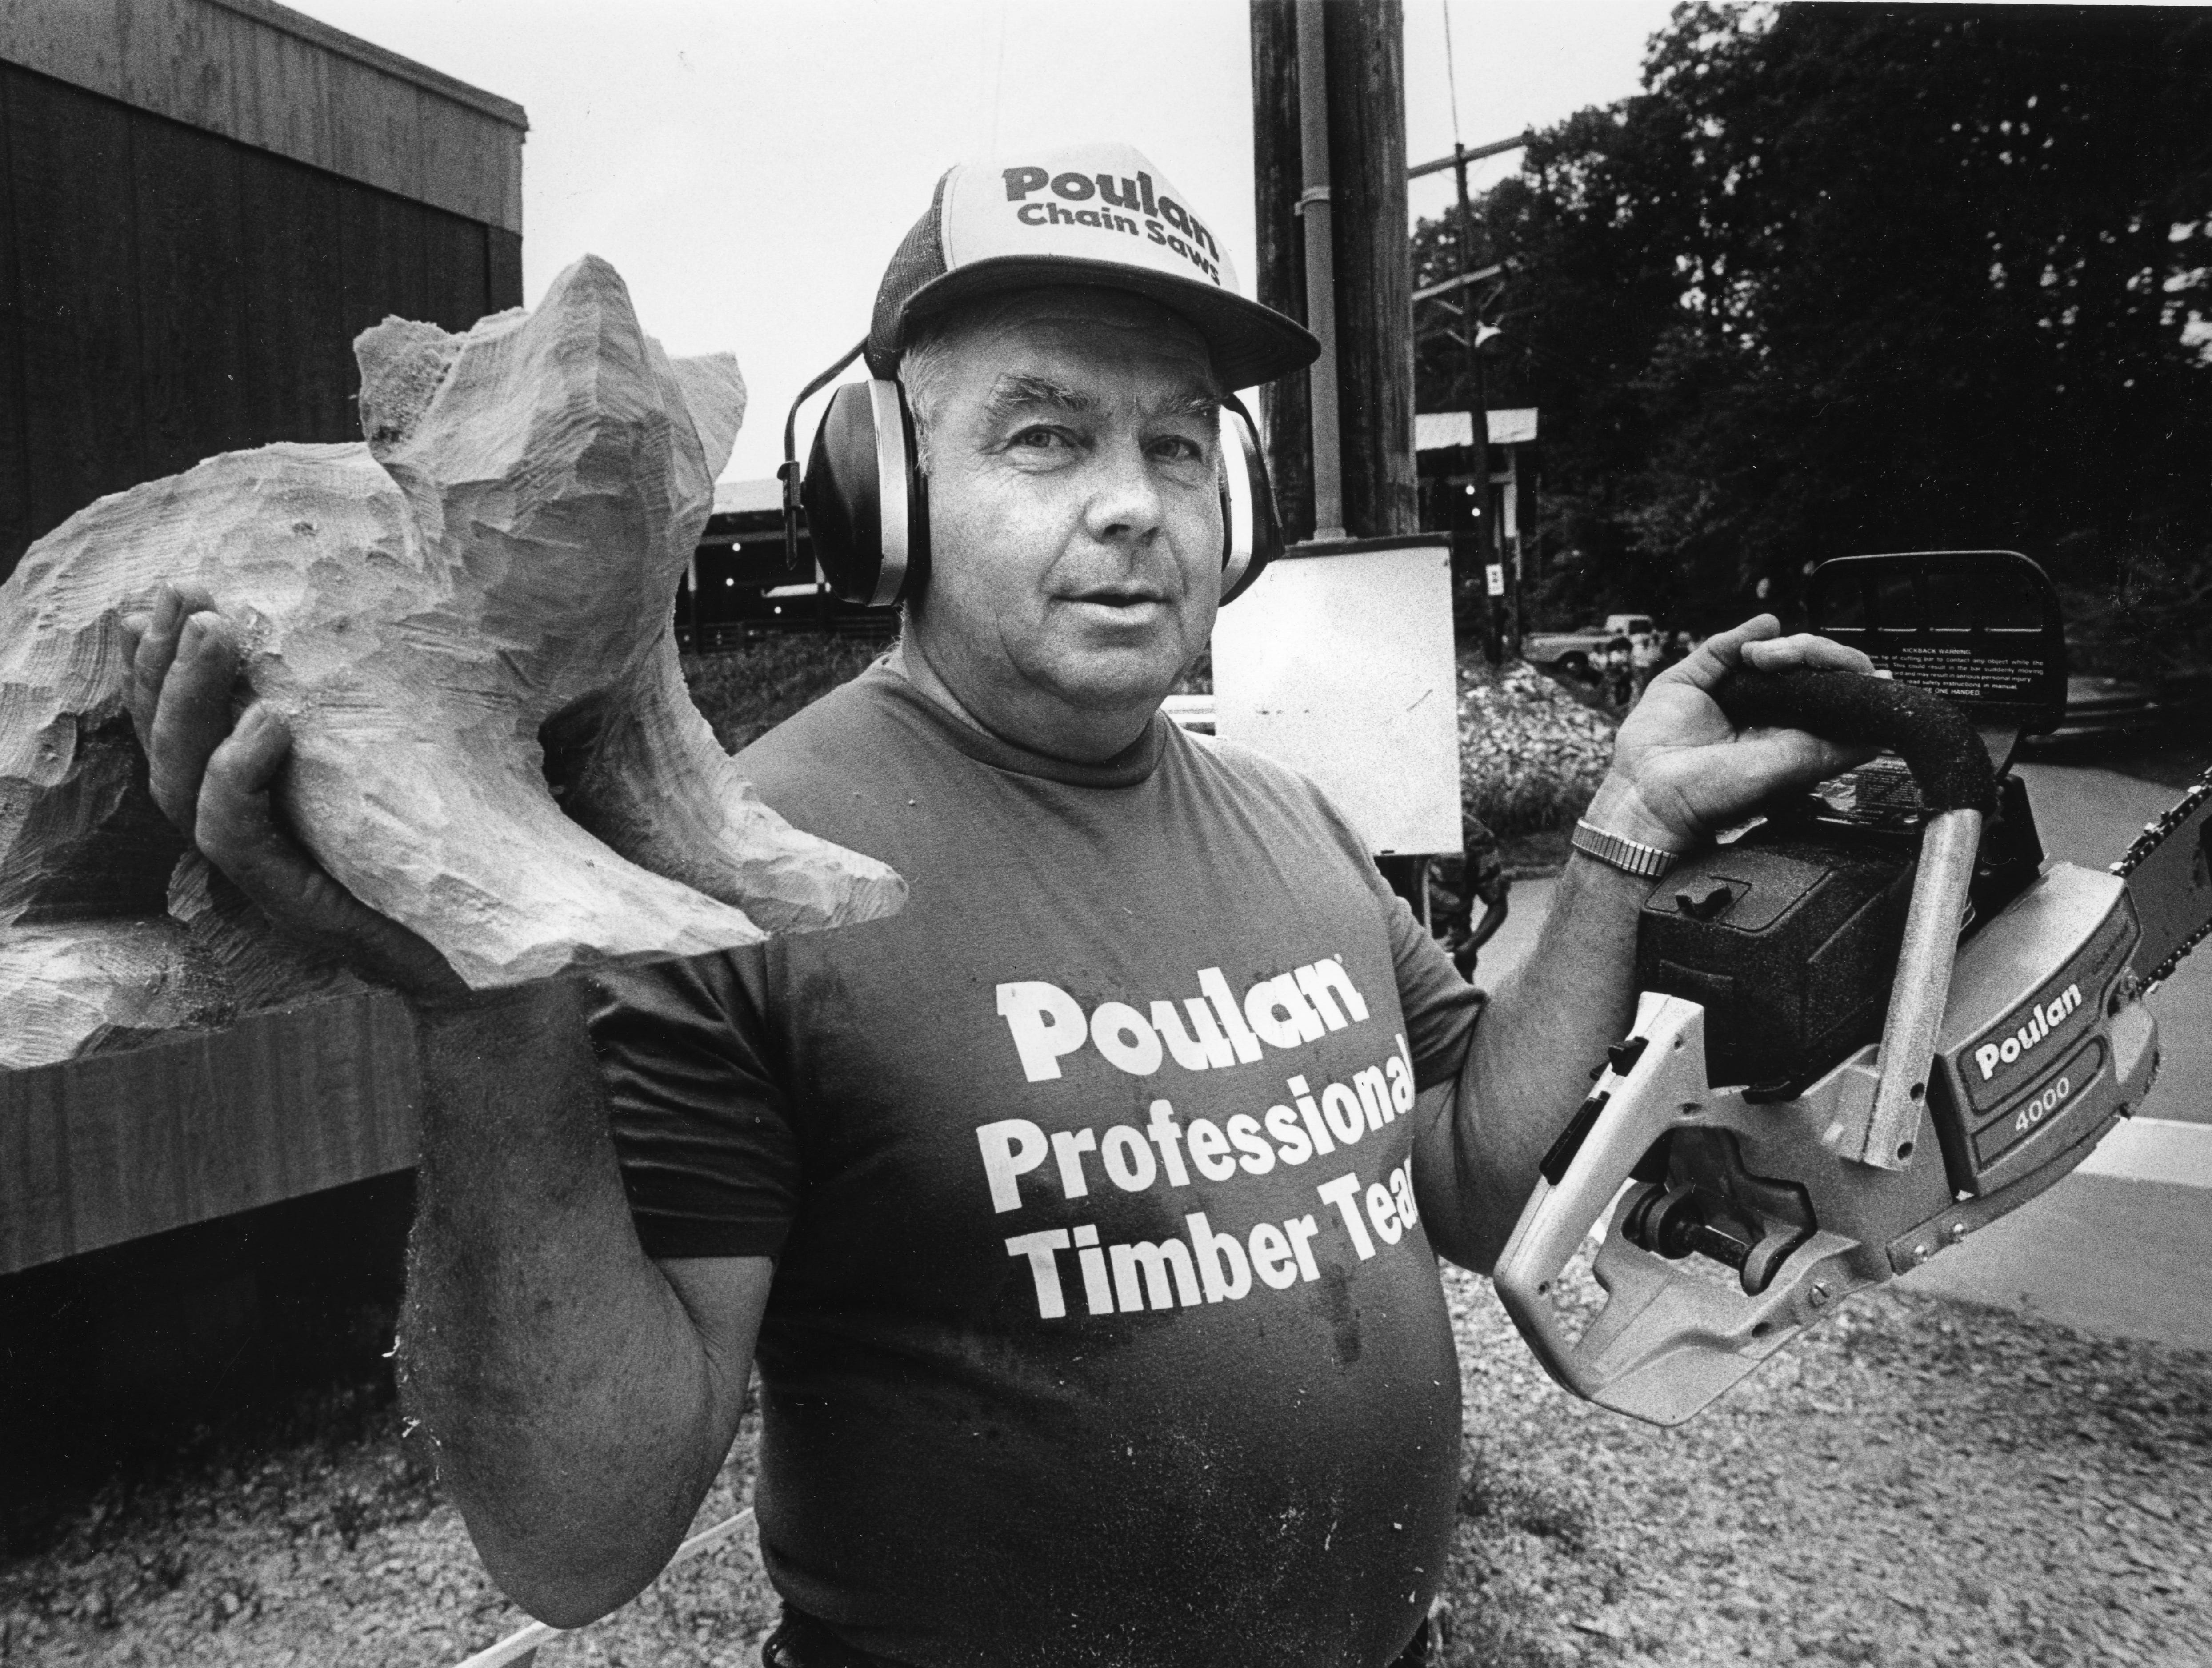 R.C. Richard with his chain saw and bear carving he made with it at the Tennessee Valley Fair on September 13, 1985.